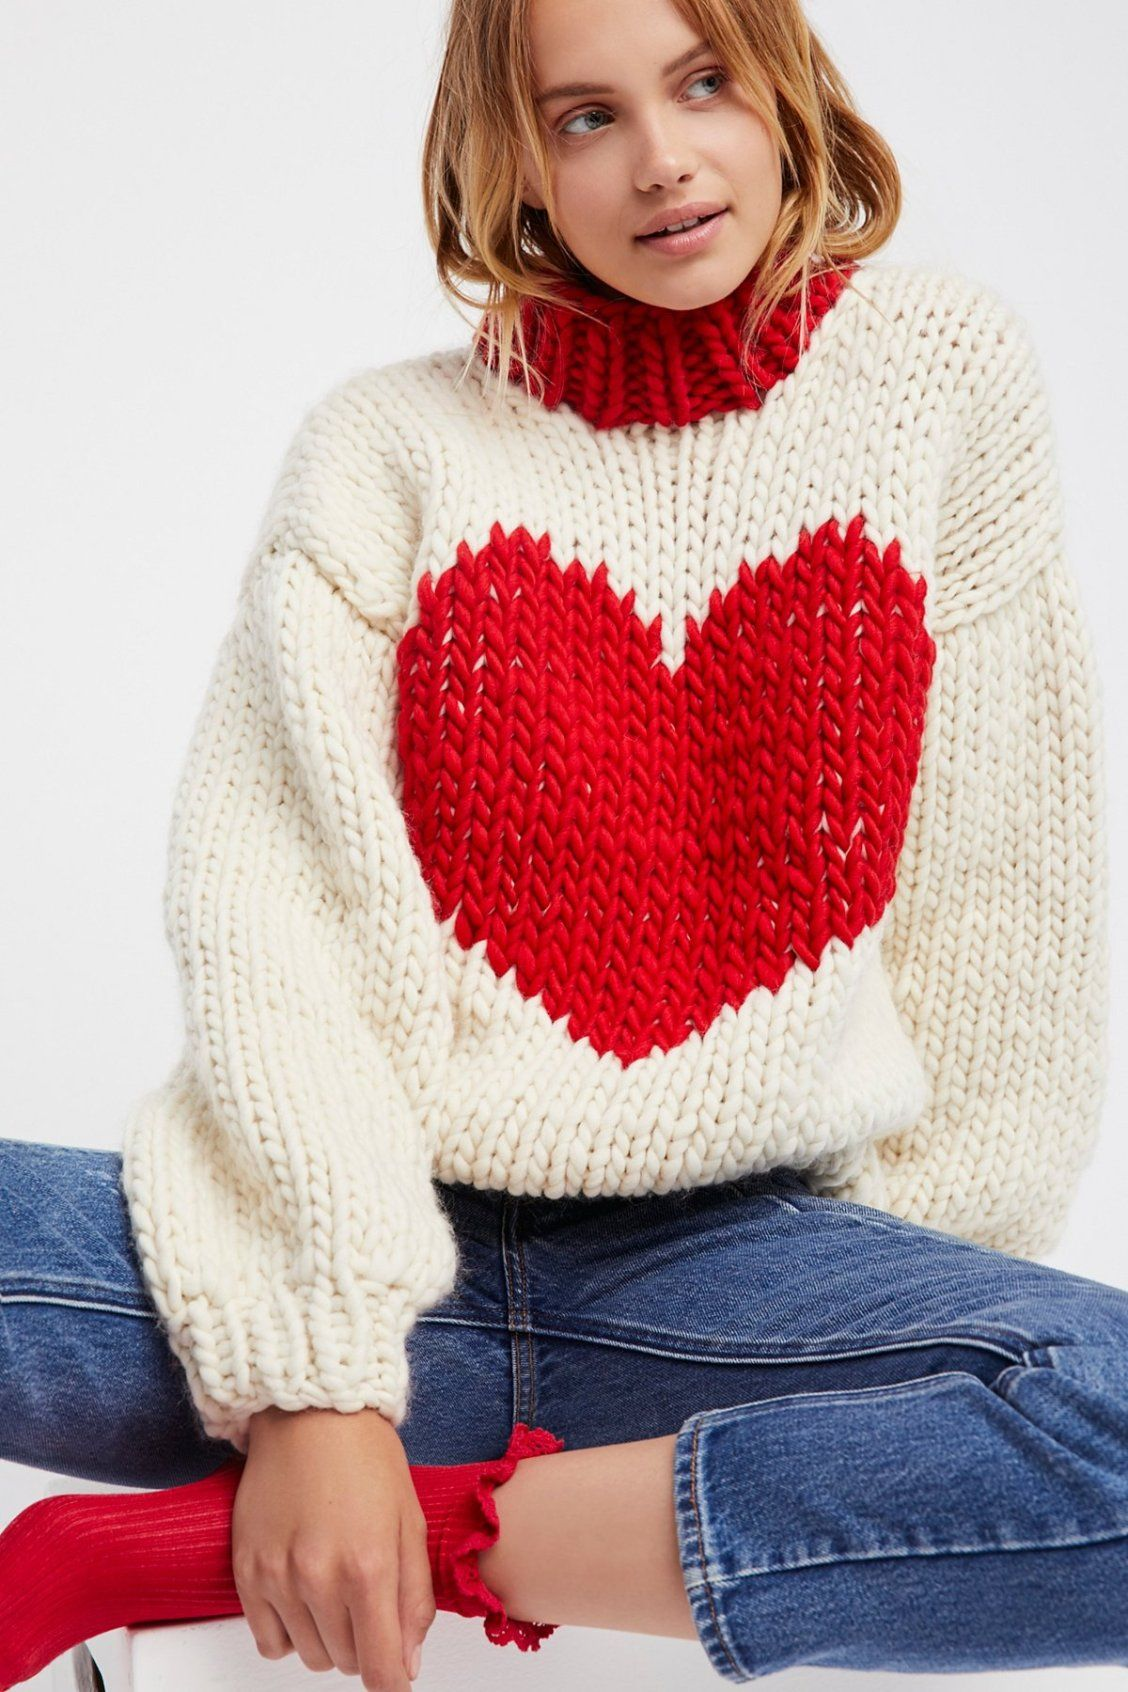 66217e99a91 Happy Hearts Sweater